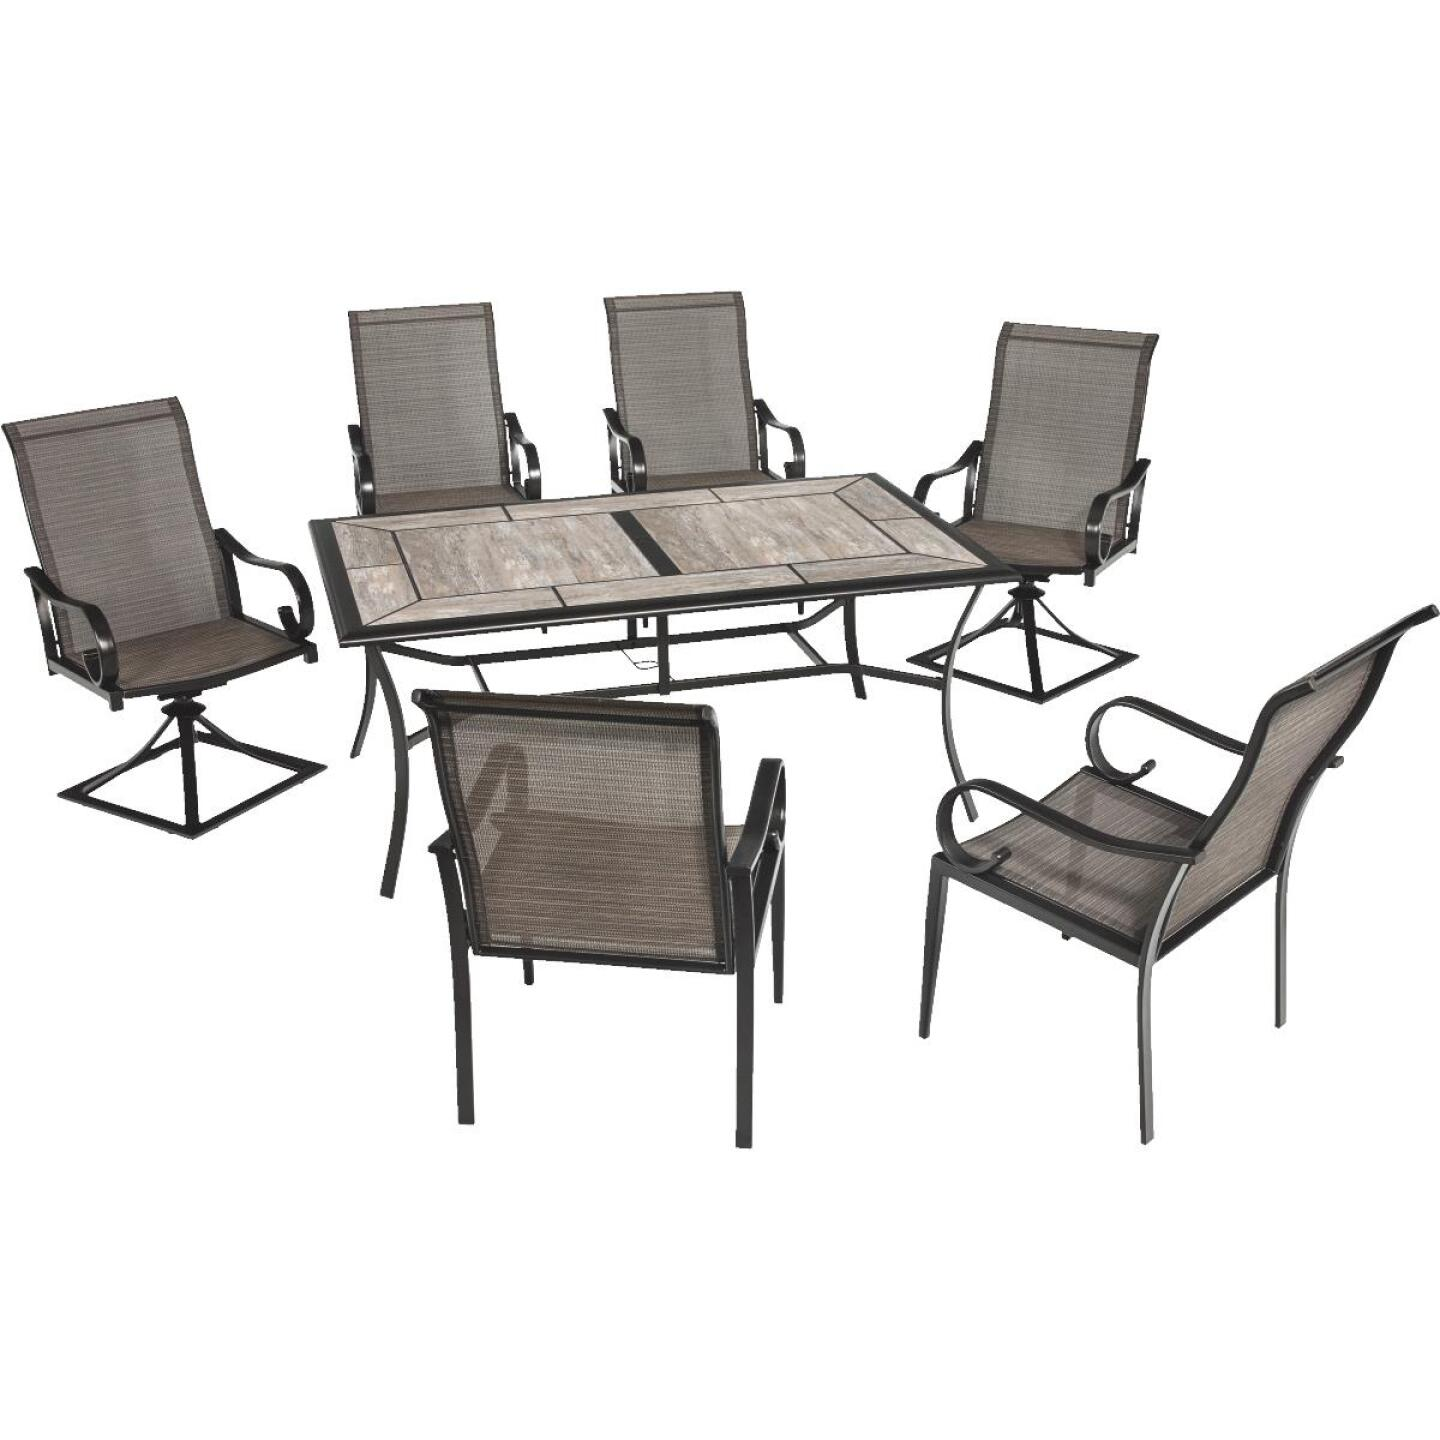 Outdoor Expressions Berkshire 7-Piece Dining Set Image 255